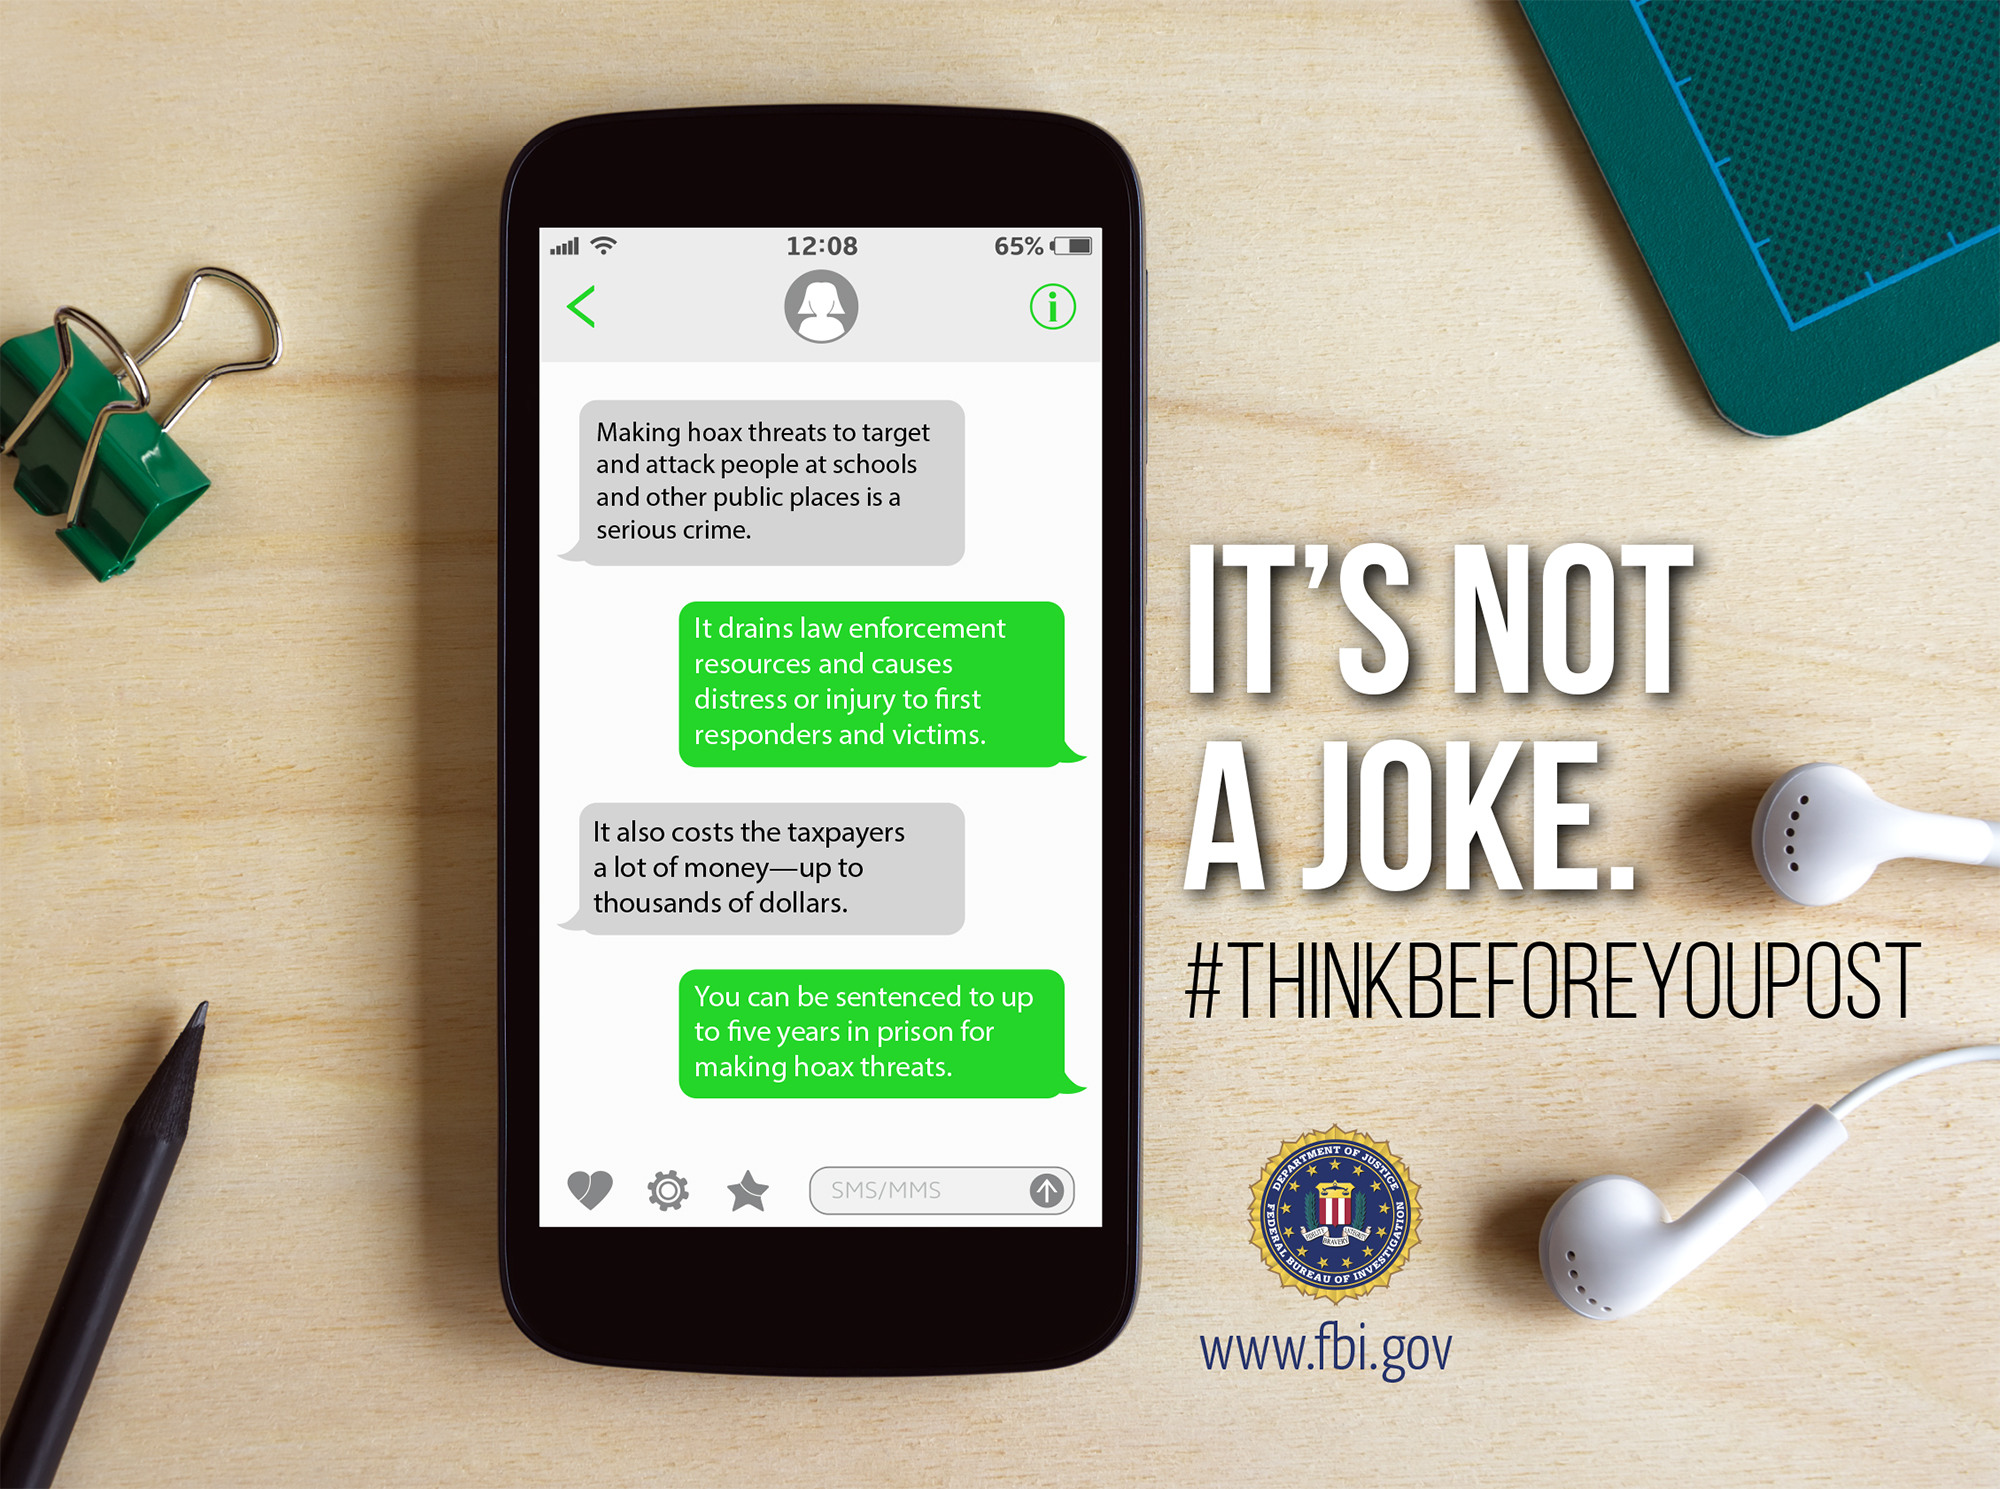 Informational graphic depicting a cell phone texting conversation that states the fact that making hoax threats against schools and other public places is a serious federal crime.